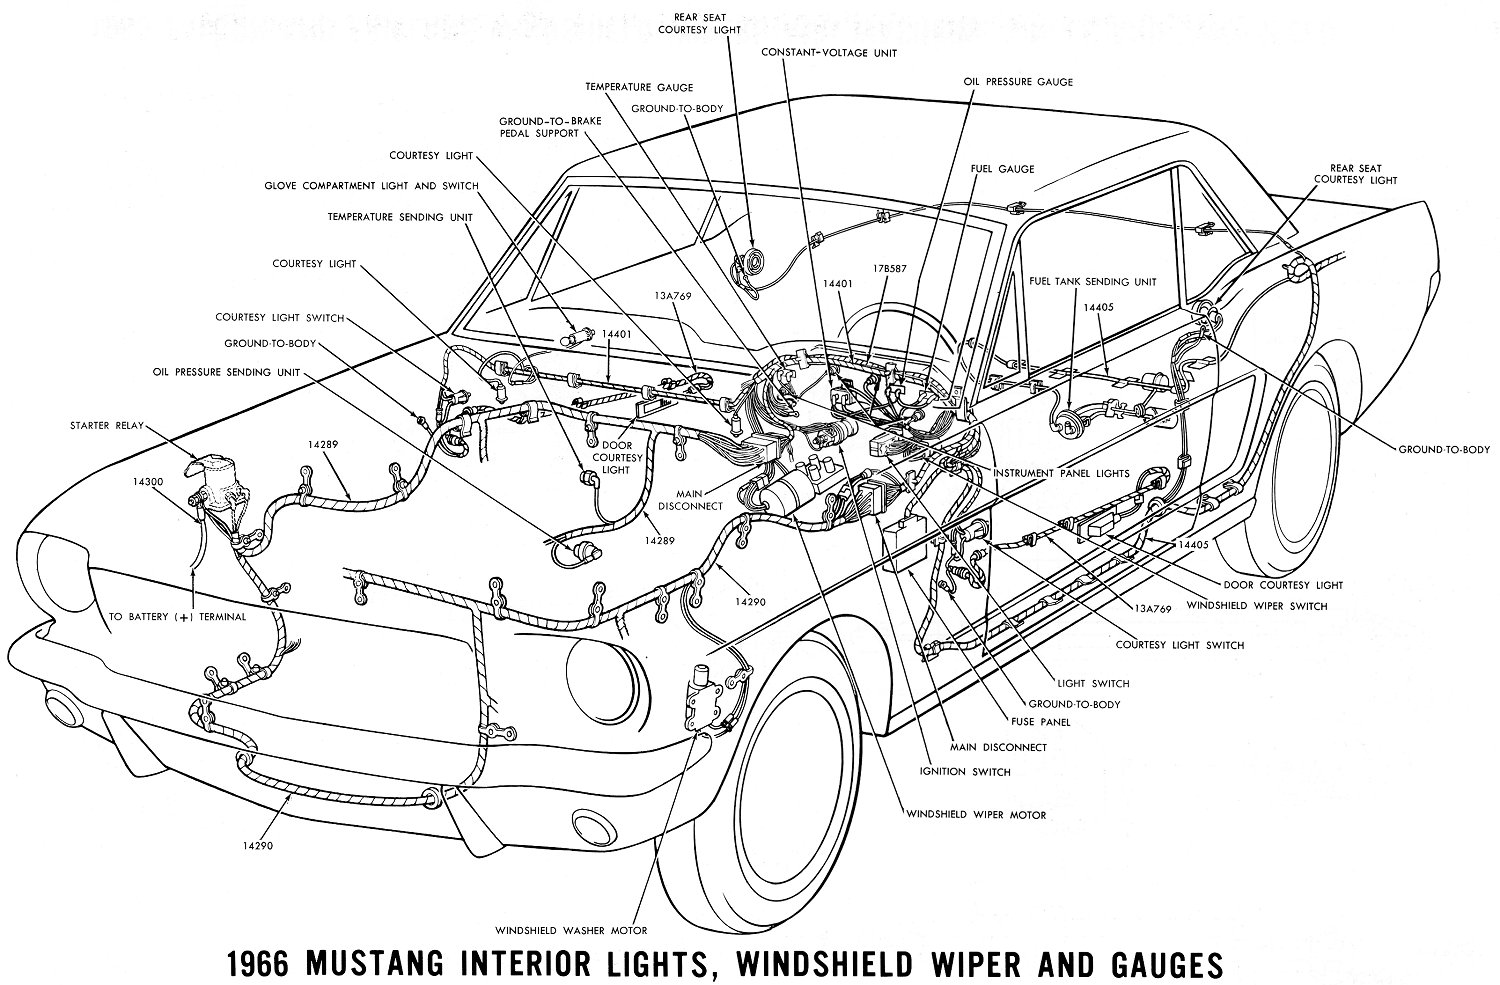 1966 Mustang Wiring Diagrams Average Joe Restoration Wall Switch Schematic Diagram Sm66int